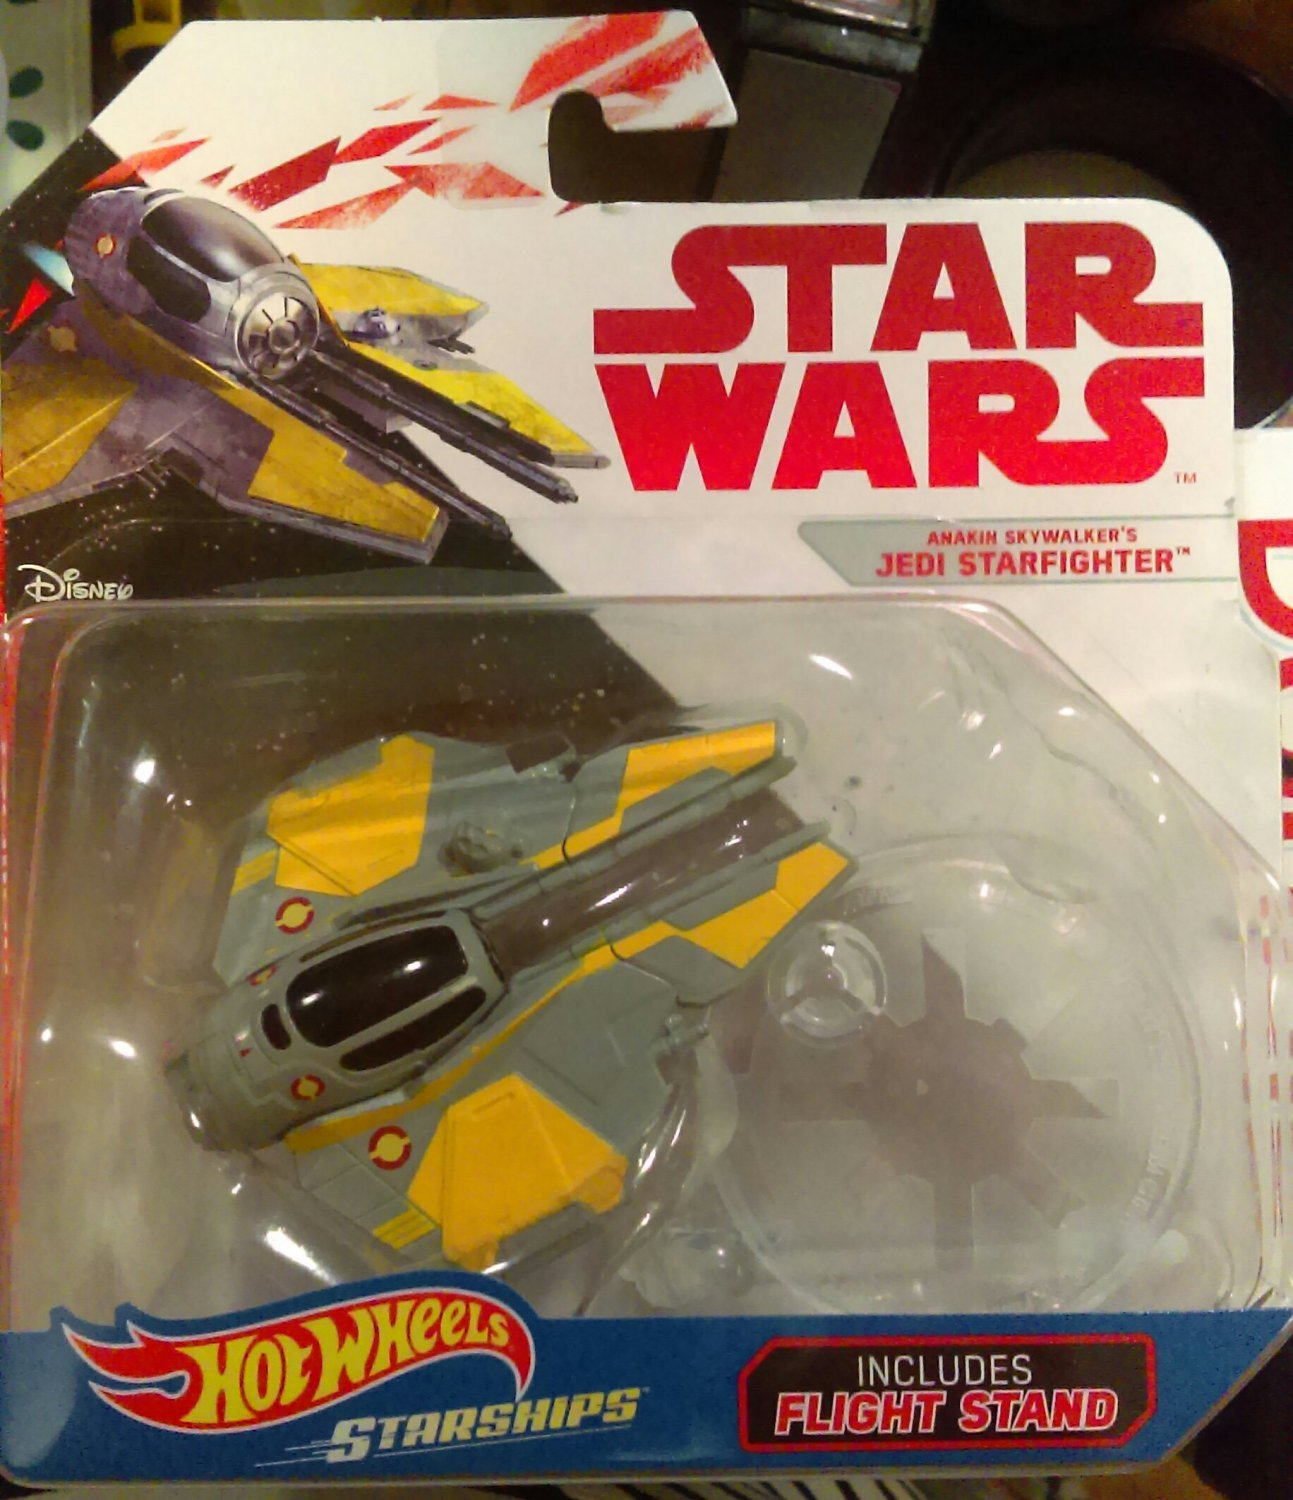 Star Wars Hotwheels Starships- Anakin Skywalker's Jedi Starfighter